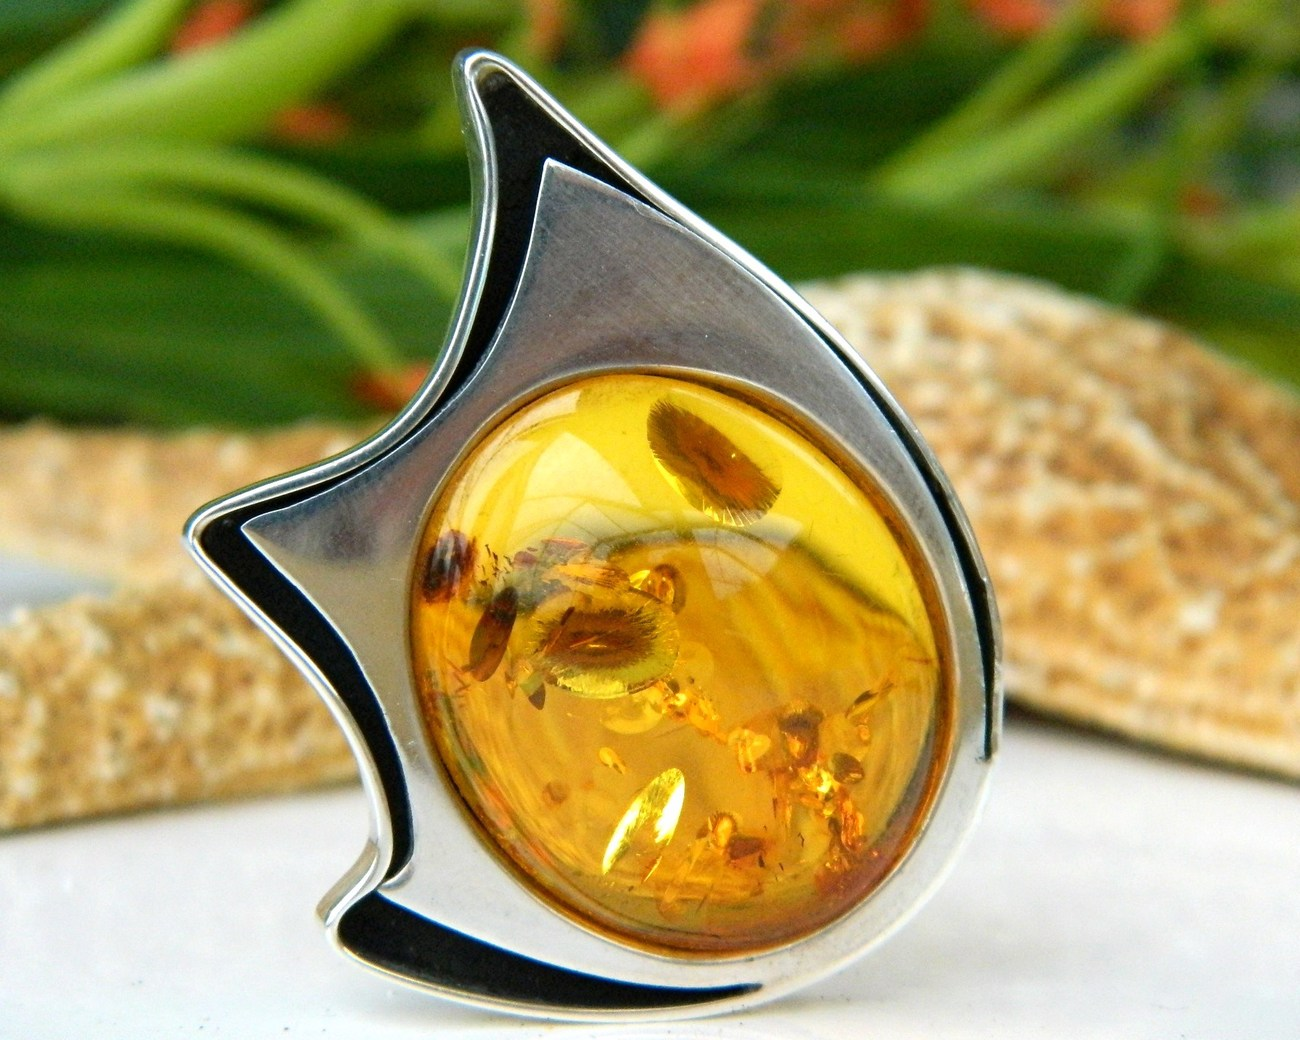 Amber_modernist_sterling_silver_brooch_pin_poland_hallmark